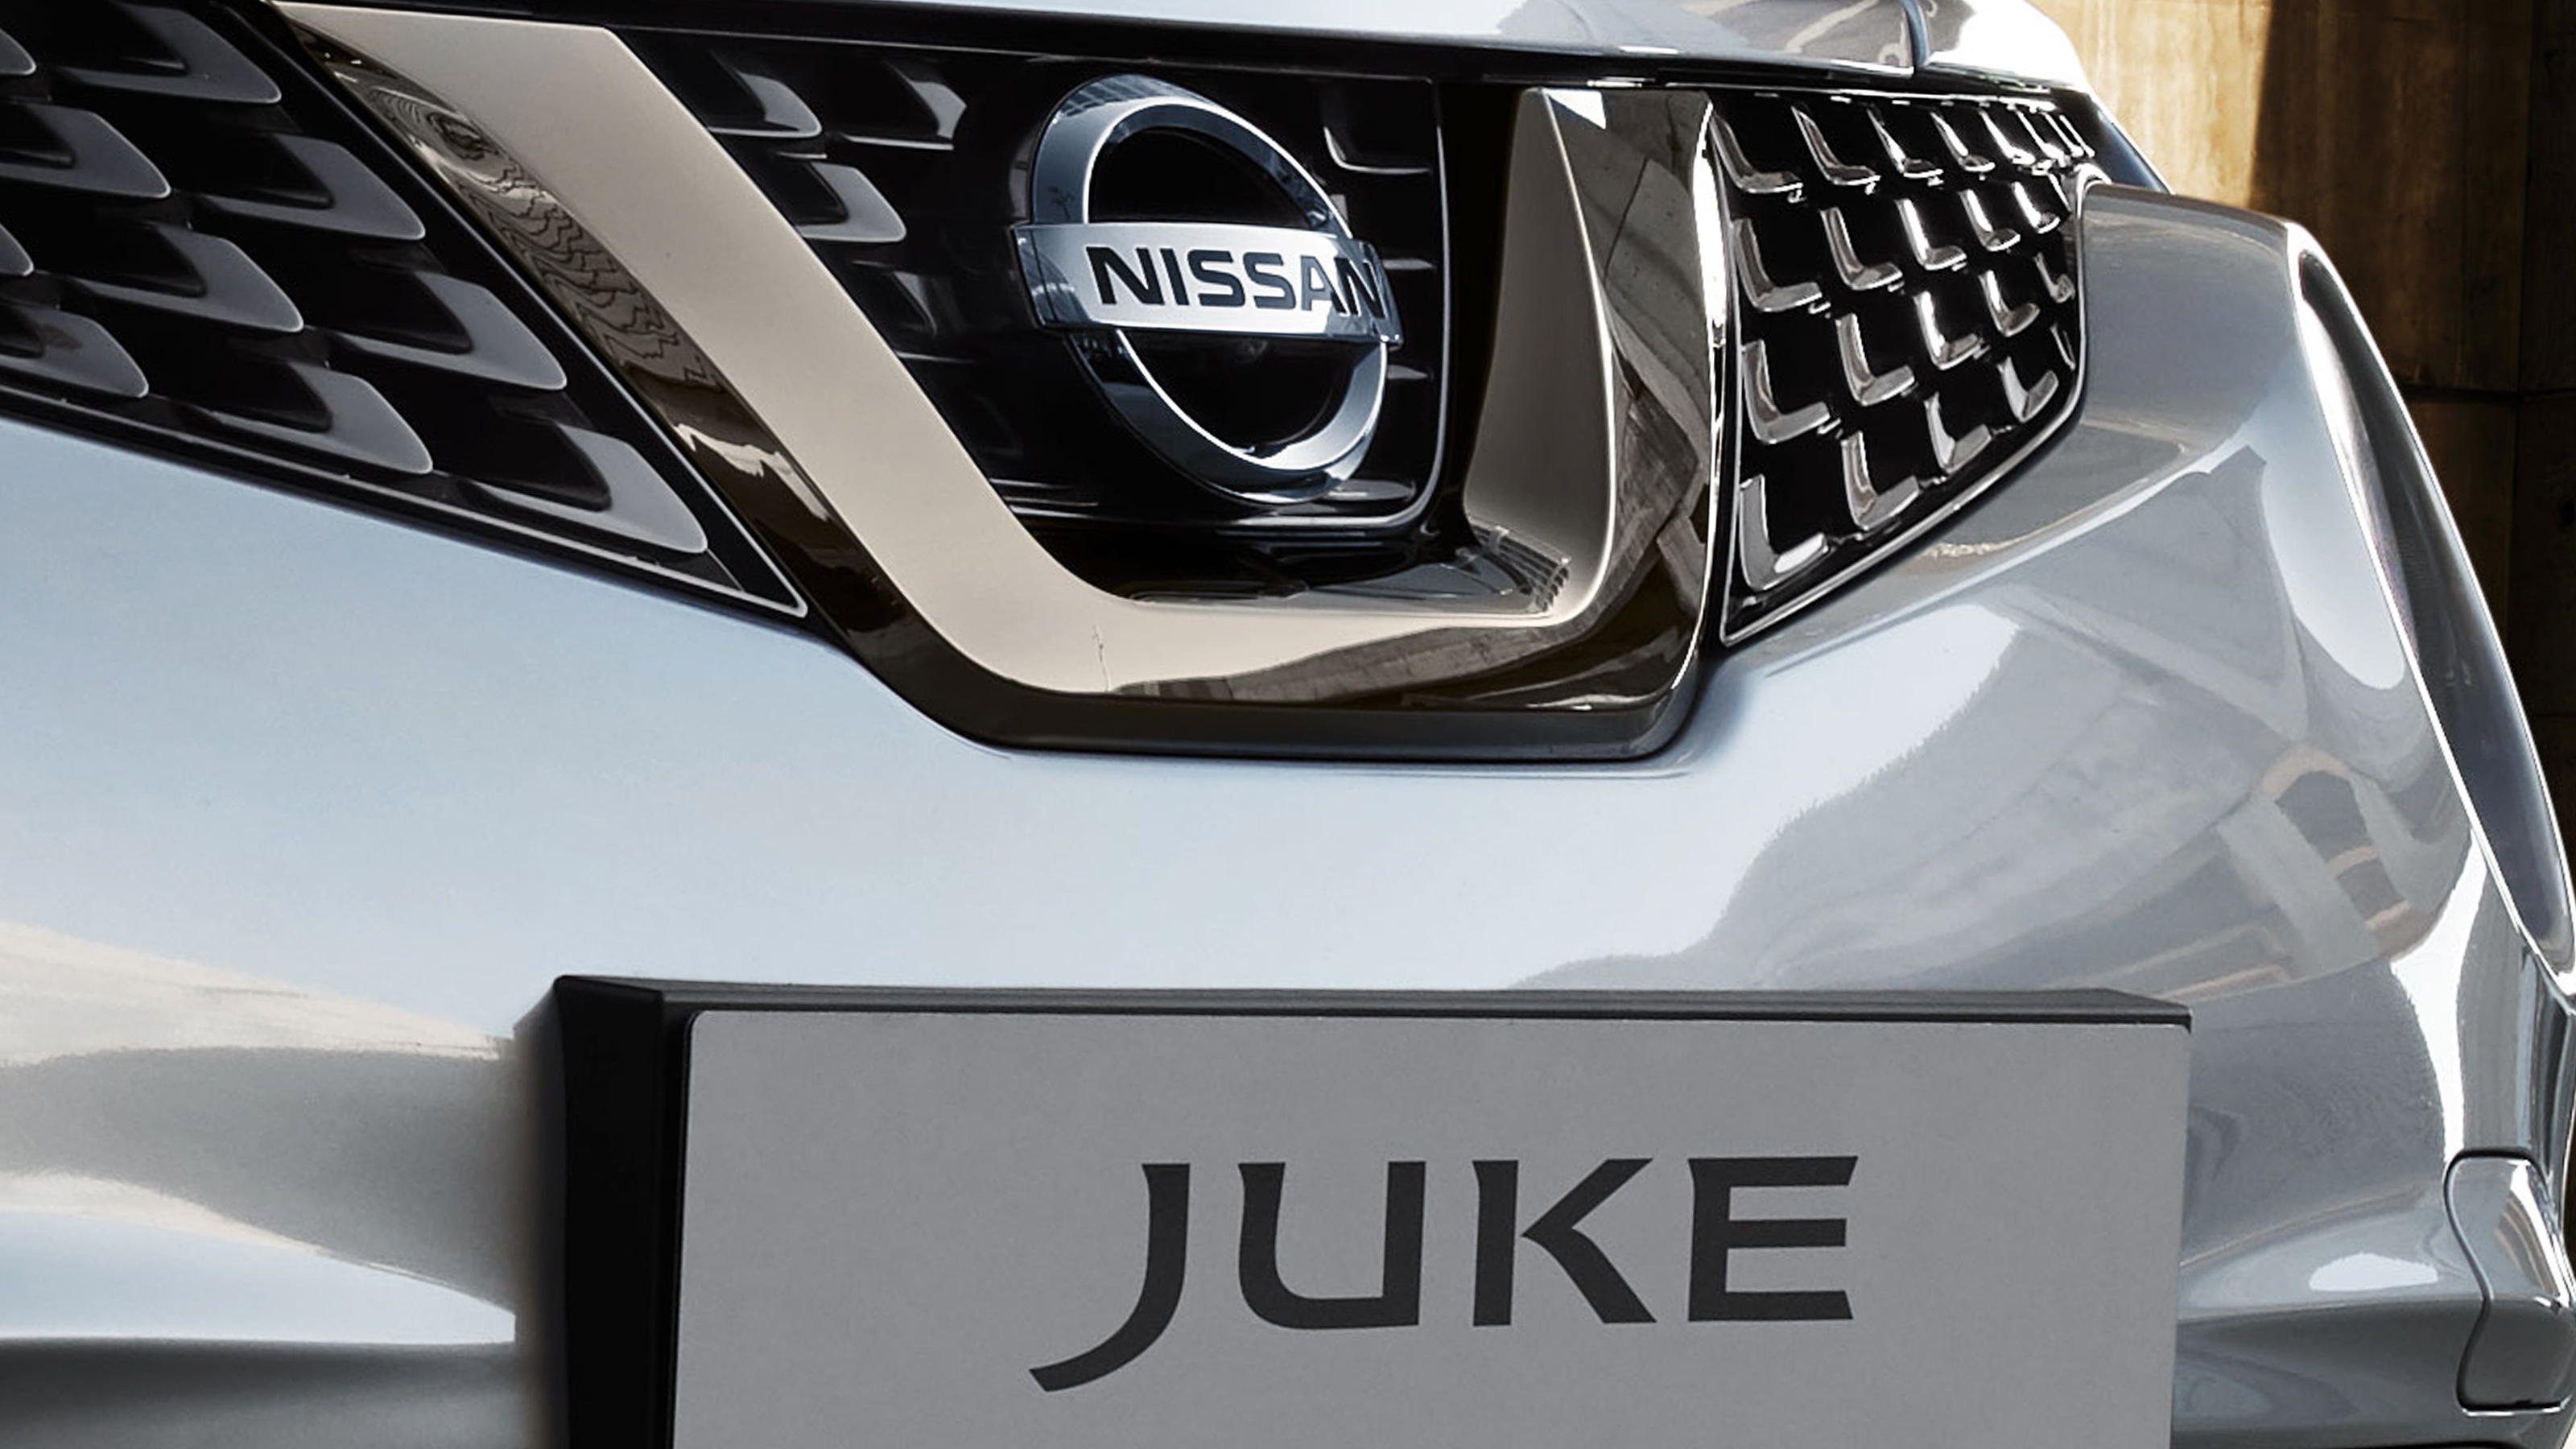 NISSAN JUKE 2018 Kühlergrill in V-Form